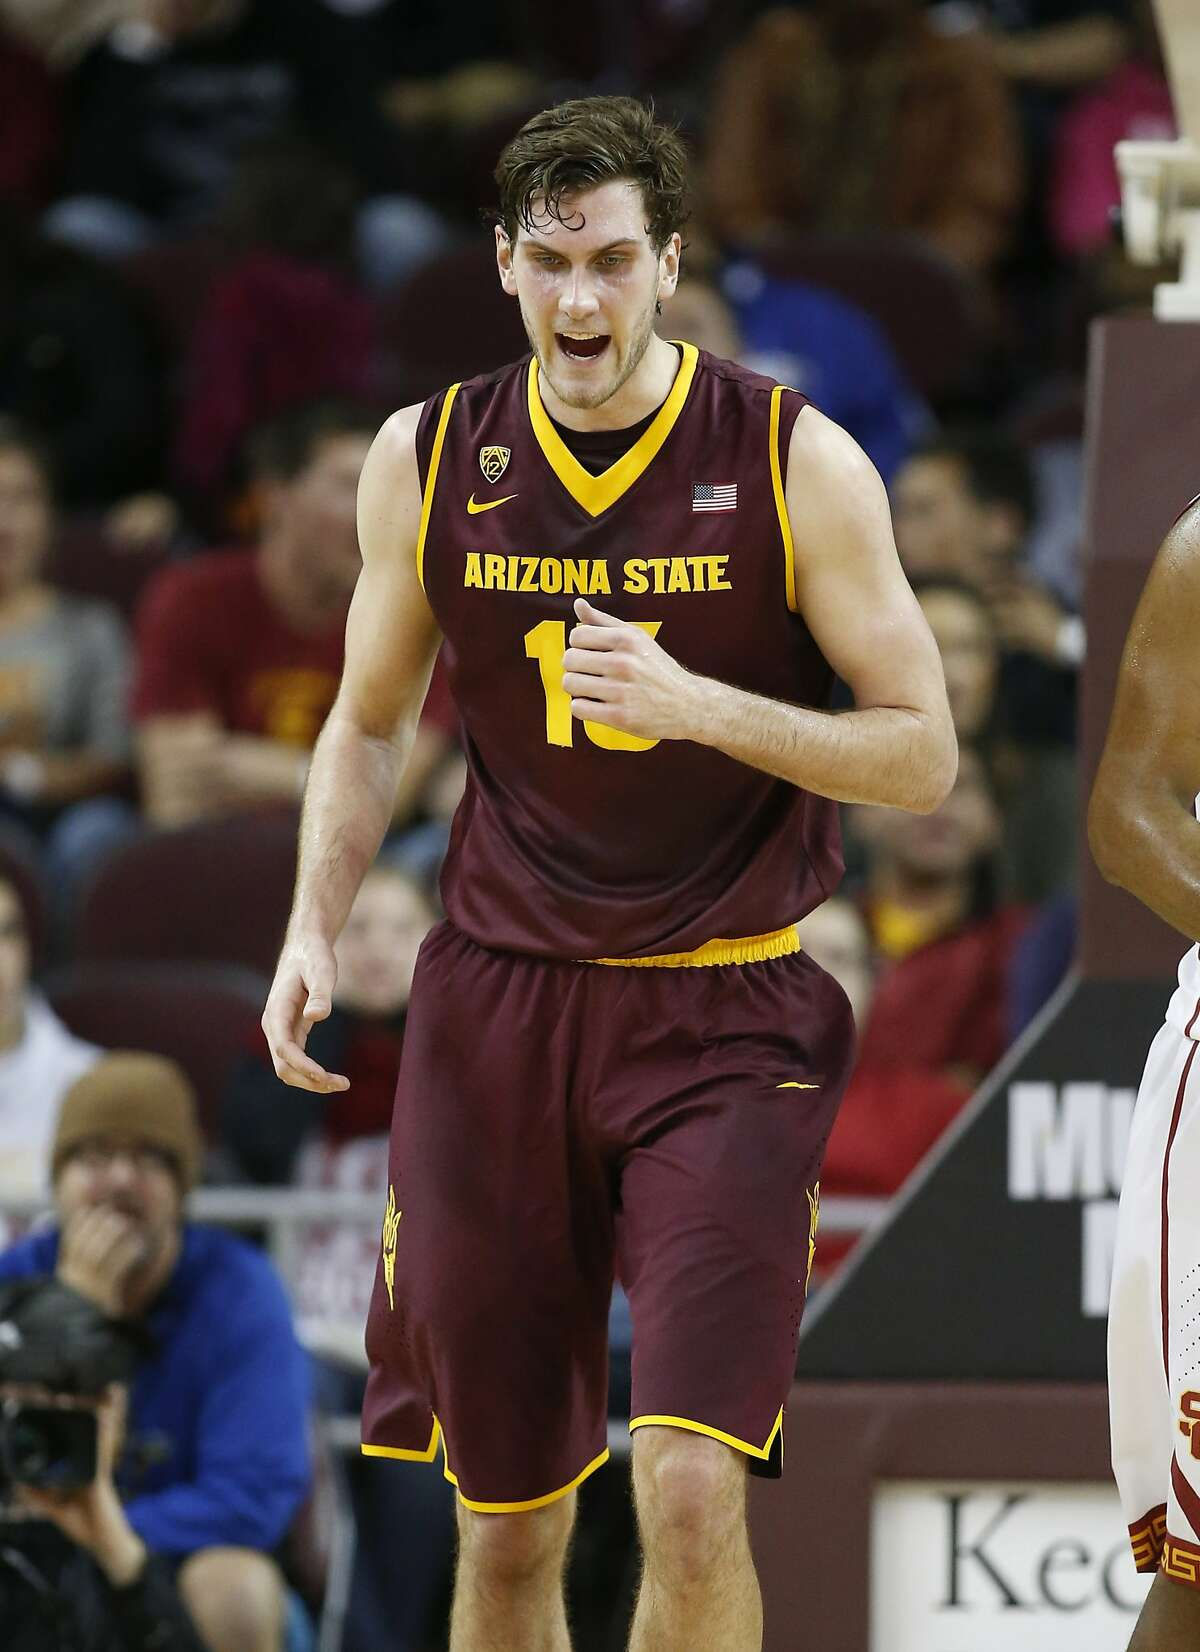 Arizona State's Jordan Bachynski, right, dunks the ball over Southern California's Omar Oraby, left, of Egypt during the second half of an NCAA college basketball game, Thursday, Jan. 9, 2014, in Los Angeles. Arizona State won 79-60. (AP Photo/Danny Moloshok)